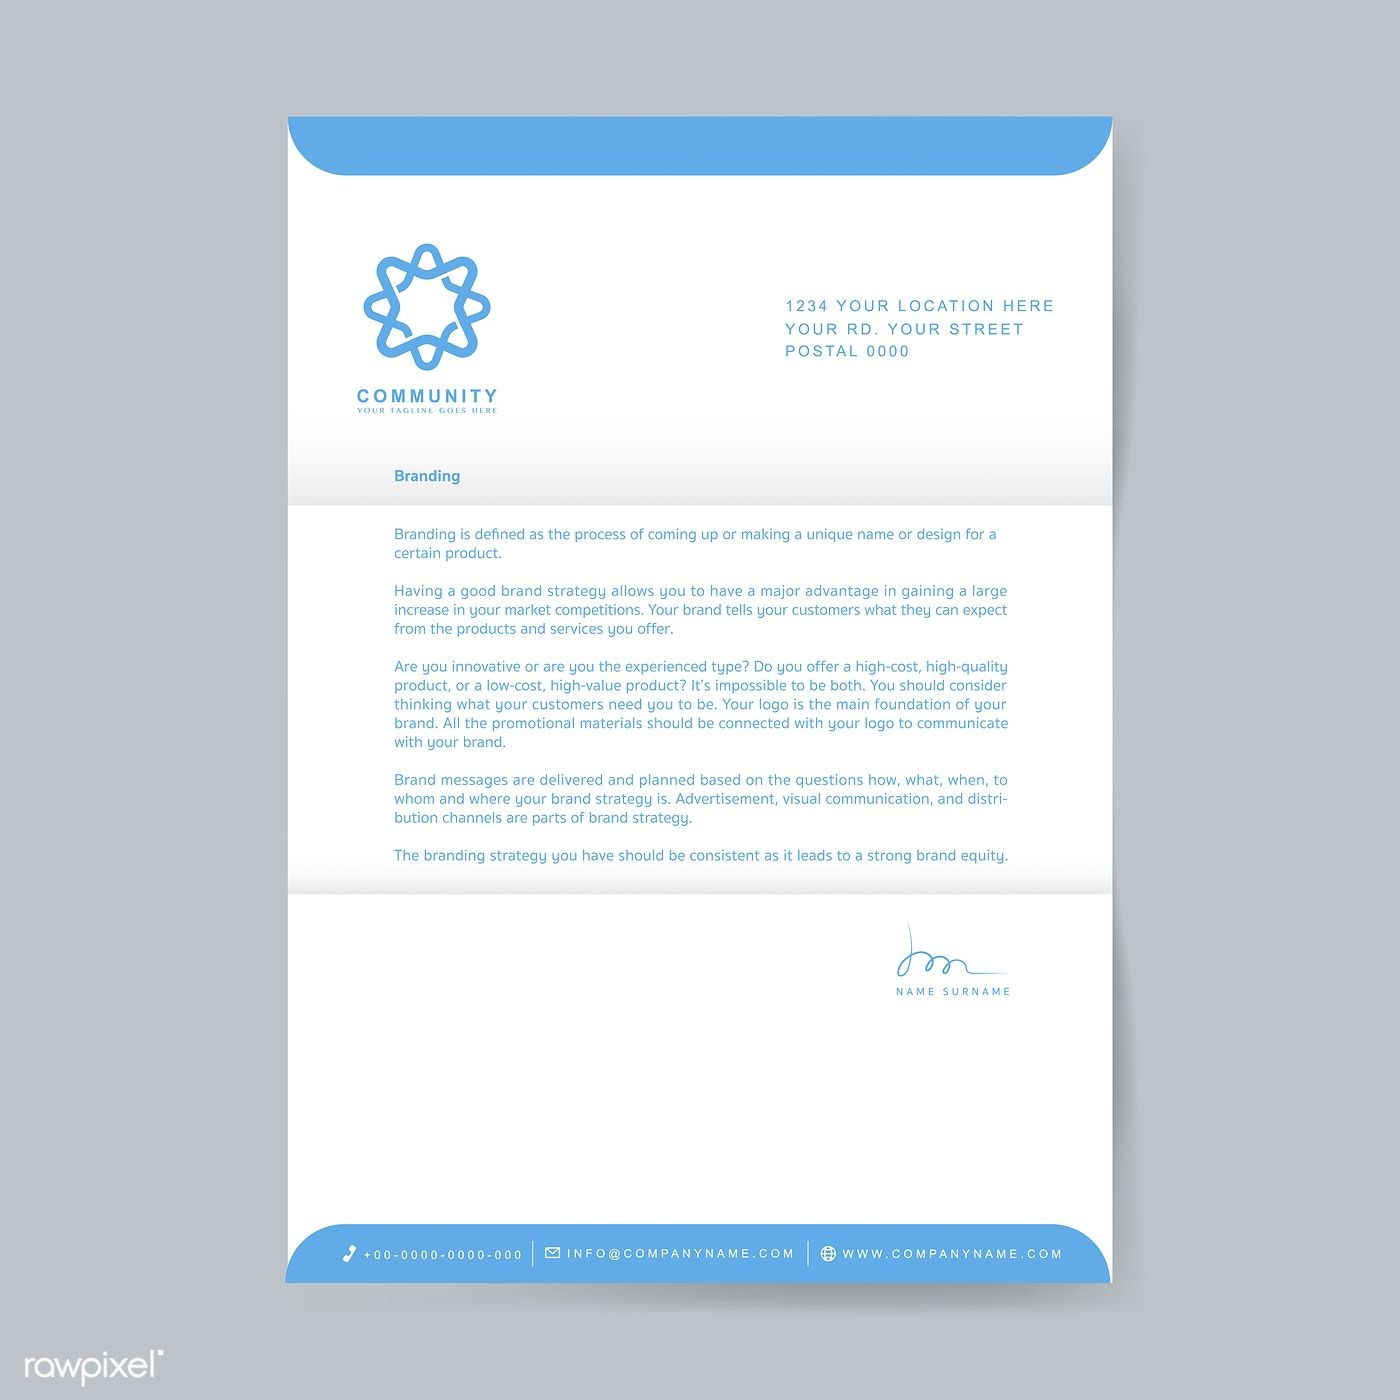 Business Letterhead Sample Design Template Free Image By Rawpixel Com Letterhead Sample Letterhead Design Template